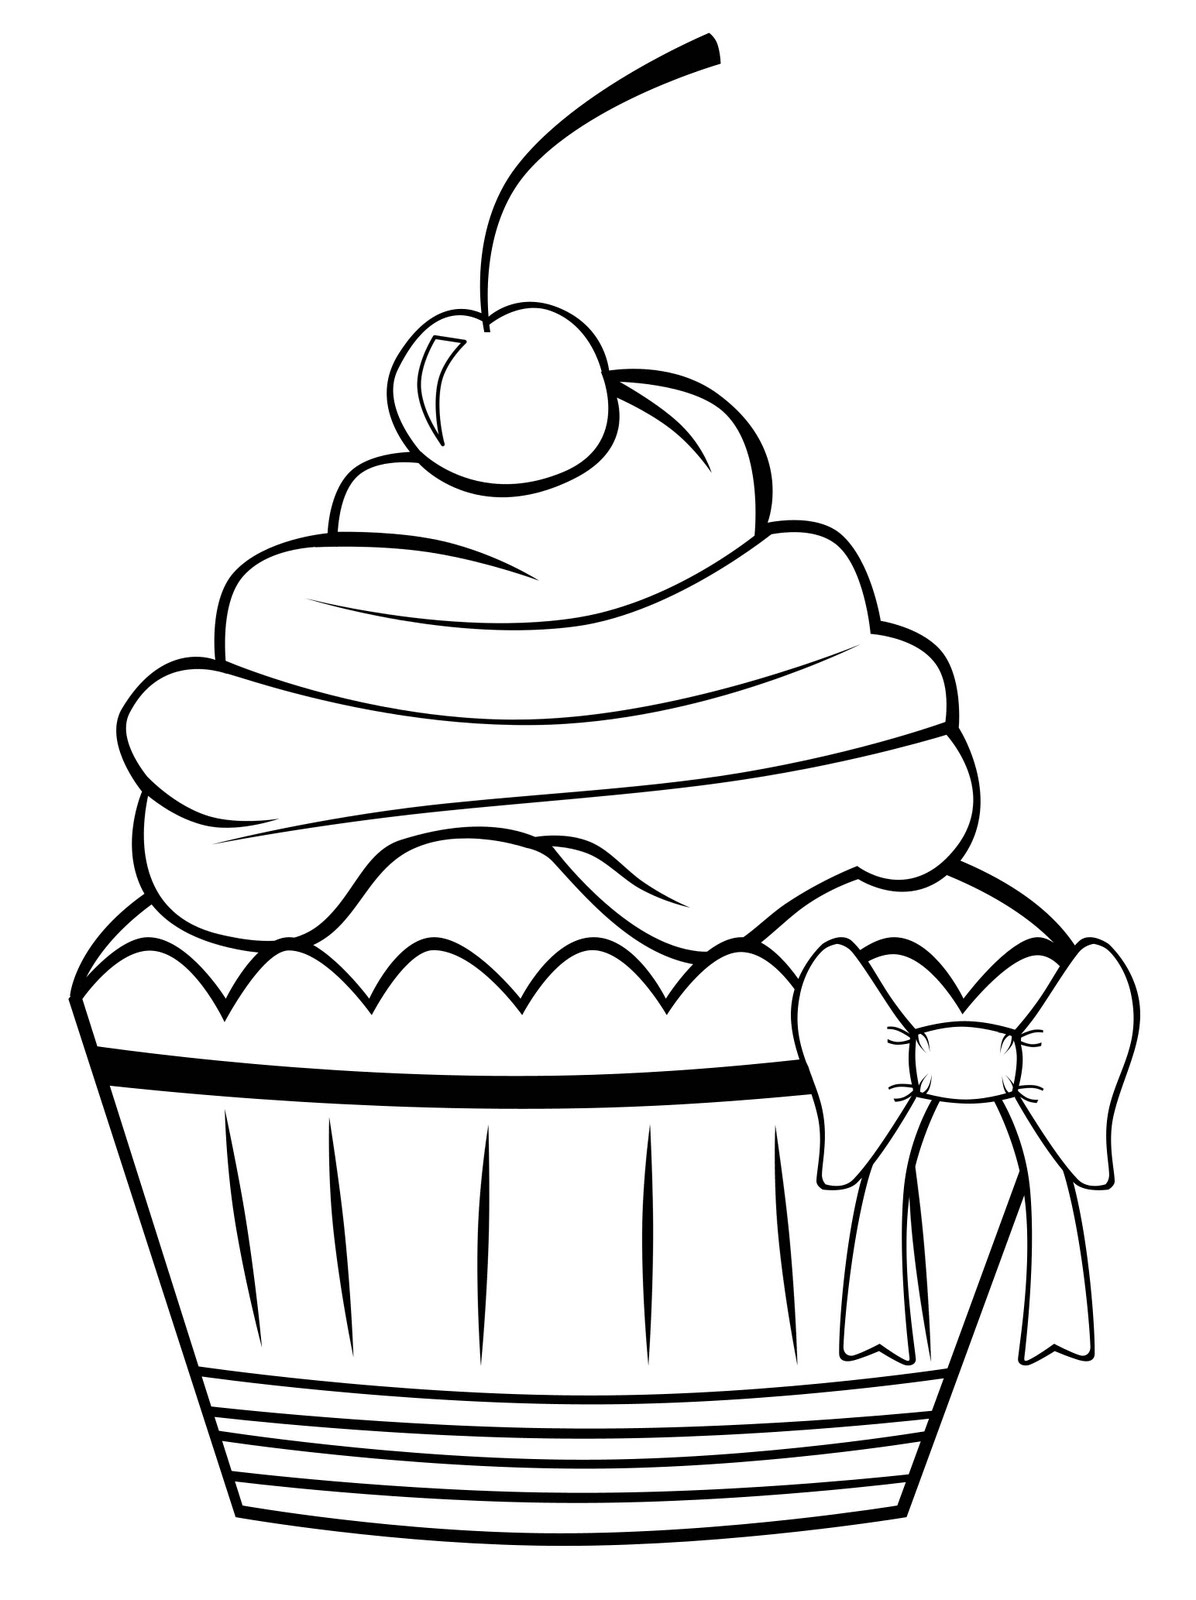 Cupcakes Coloring Pages additionally Stl Felt Monsters To Make With Your Kids Plus Free Mix N Mat besides Free Redwork Dessert also 492510909229711112 besides . on embroidery birthday cake